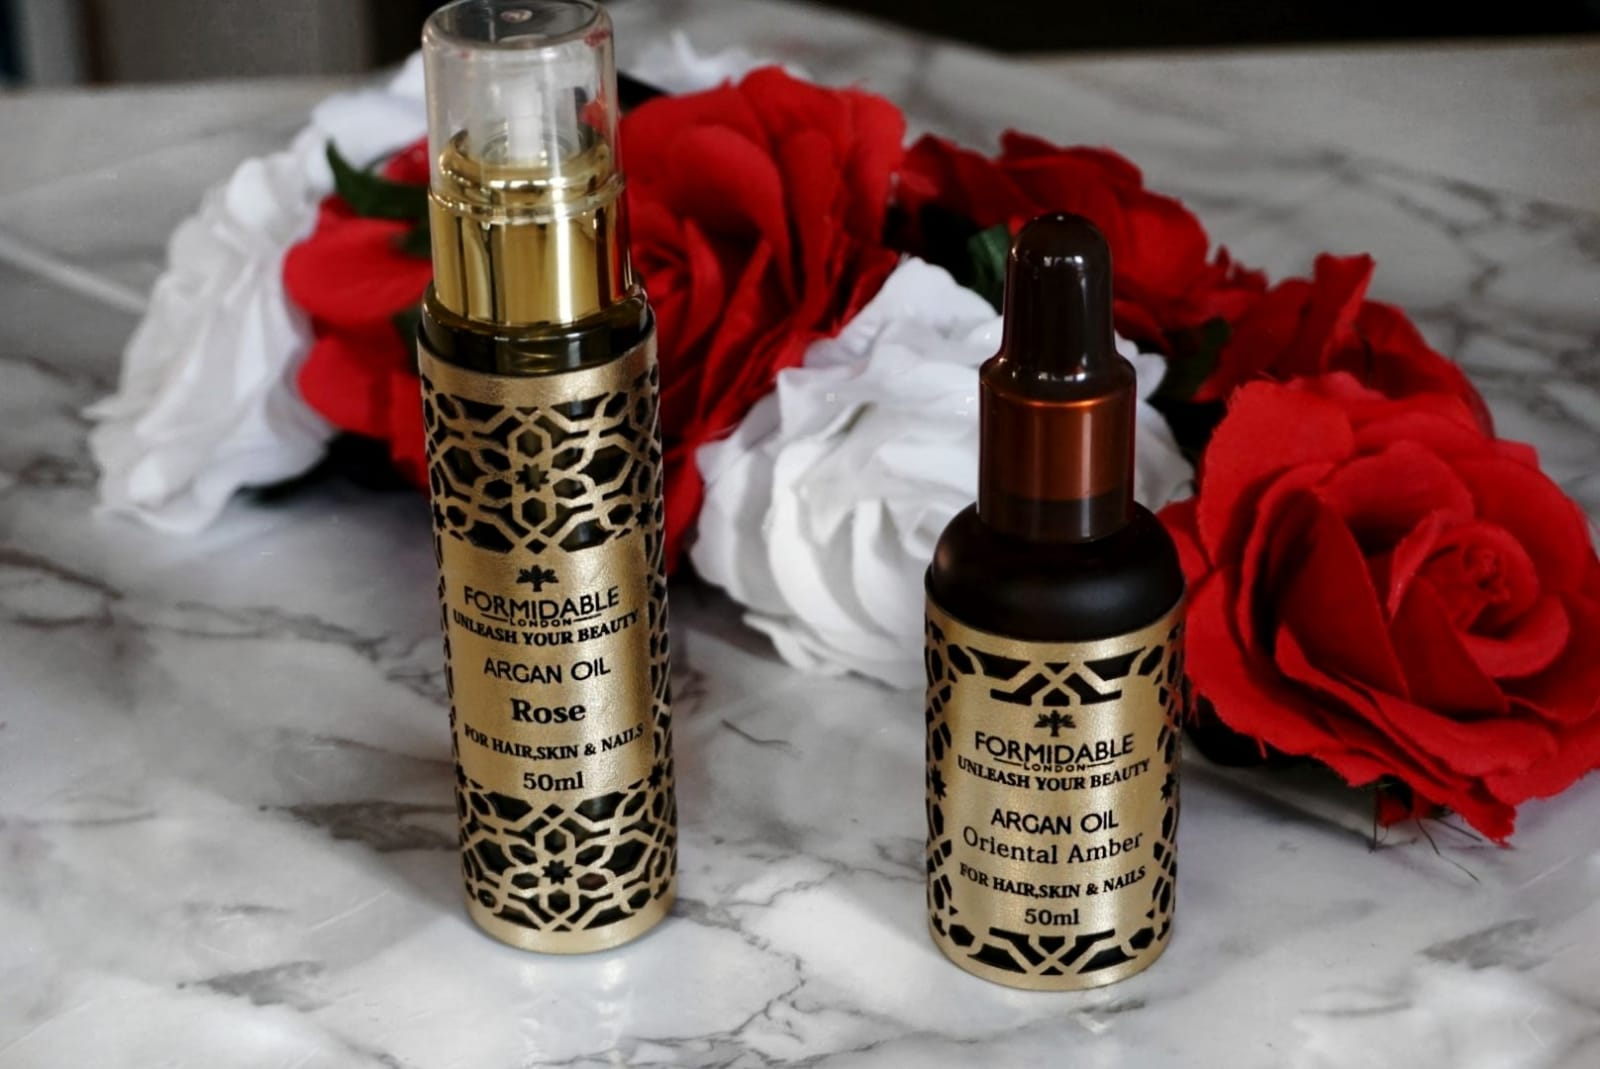 EXCLUSIVE RELEASE : ORIENTAL AMBER AND ROSE ARGAN OILS BY FORMIDABLE LONDON